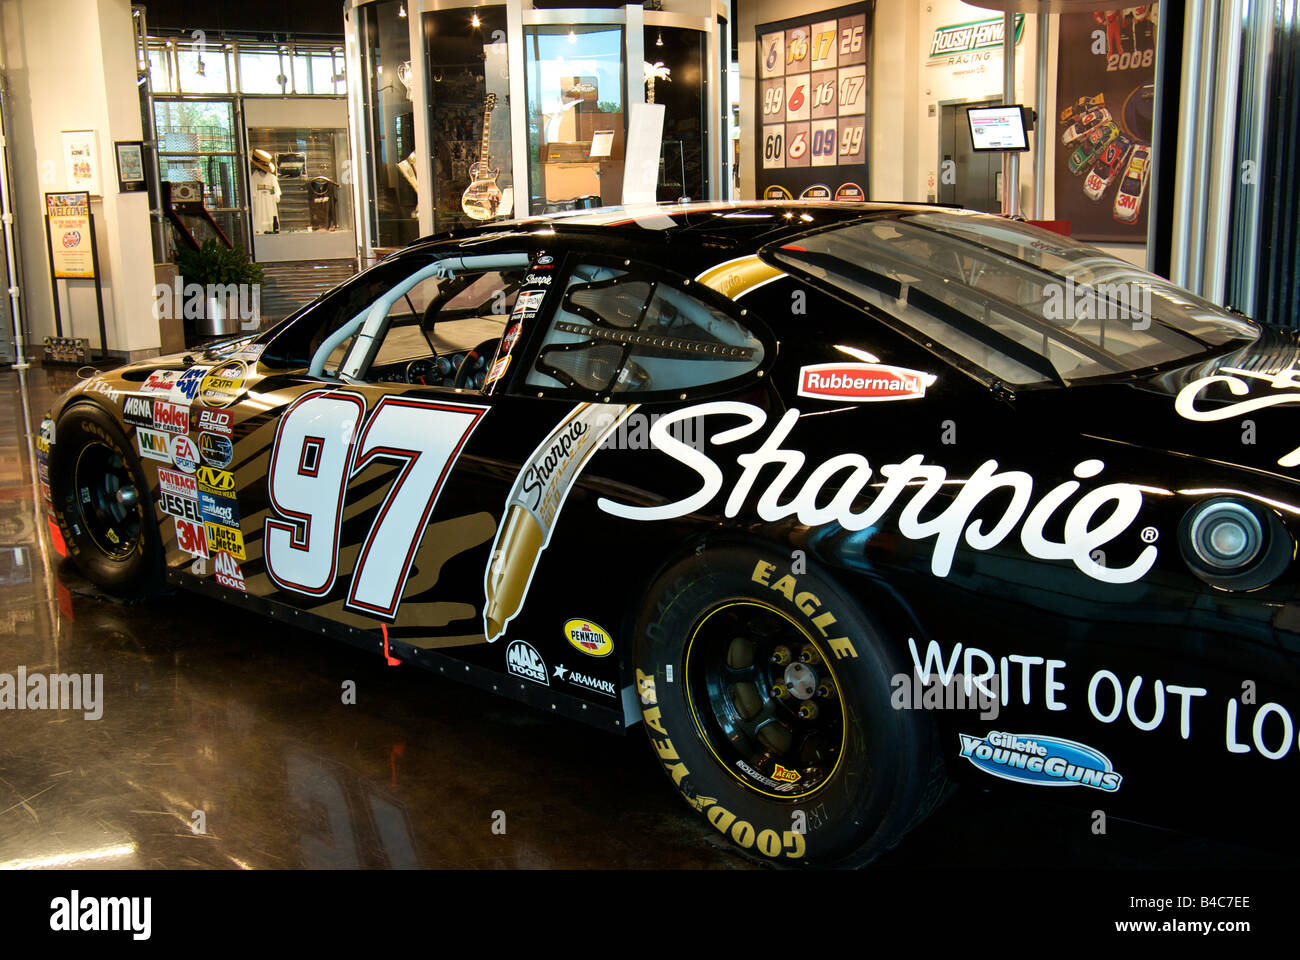 A Ford Taurus Nascar Race Car Covered In Sponsor Decals At The